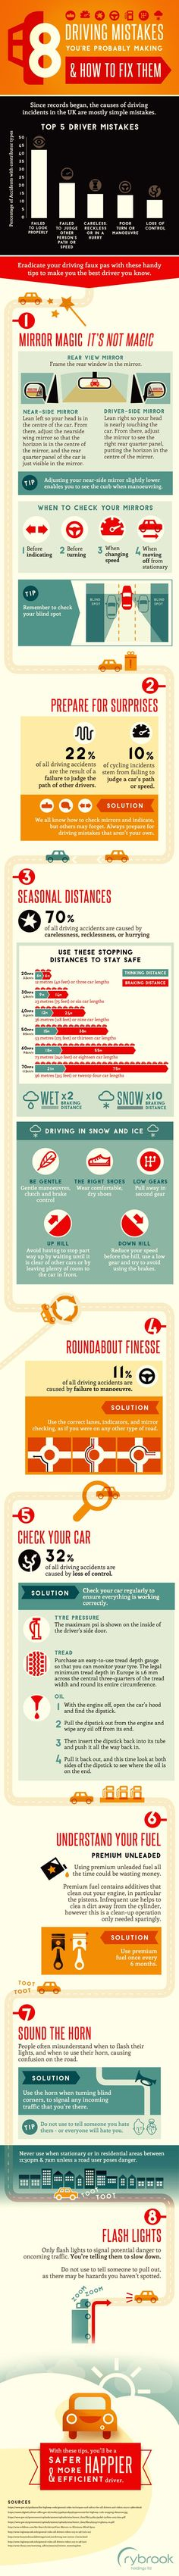 8 Driving Mistakes You Didn't Know You Were Making #Infographic #Driving http;//finelinedrivingacademy.co.uk